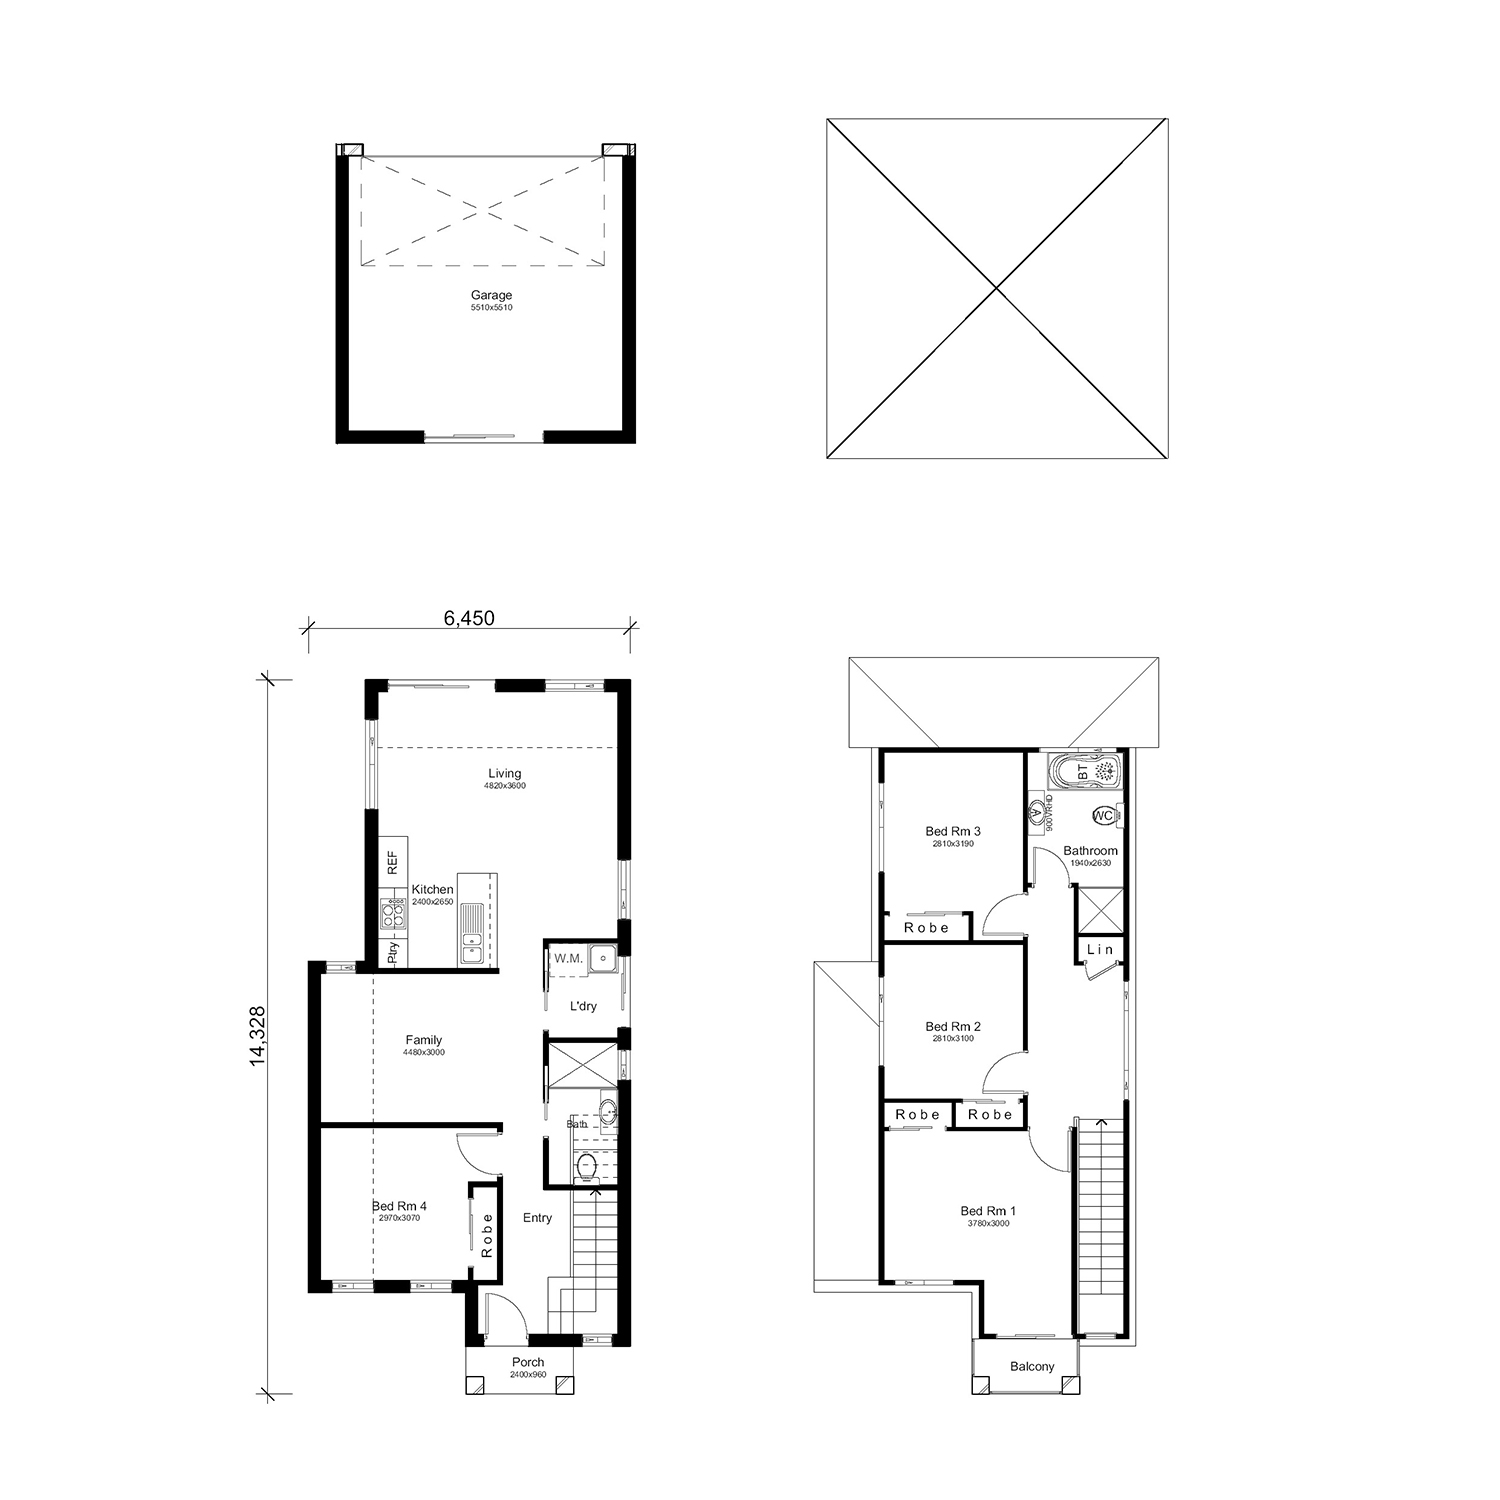 L3442468 BARDIA NSW 2565 - Floor plan